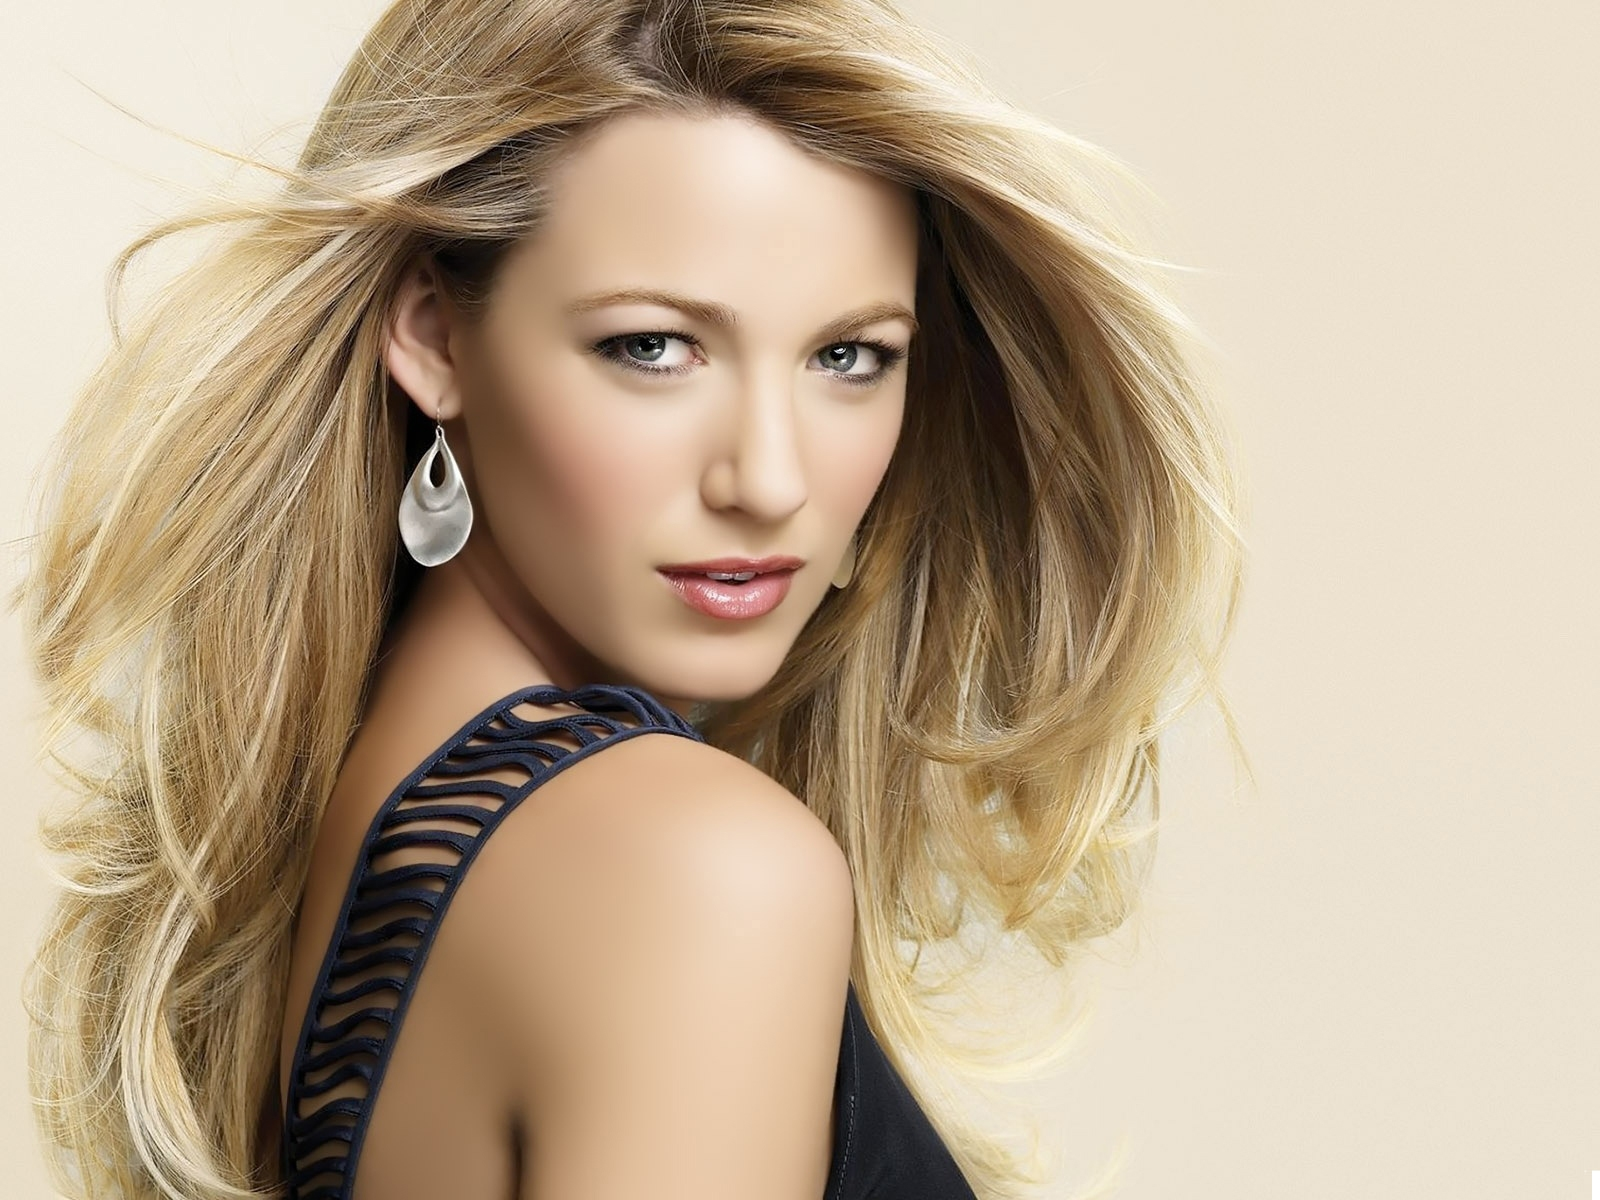 Blake Lively HD New wallpapers 2012 | All Hollywood Stars